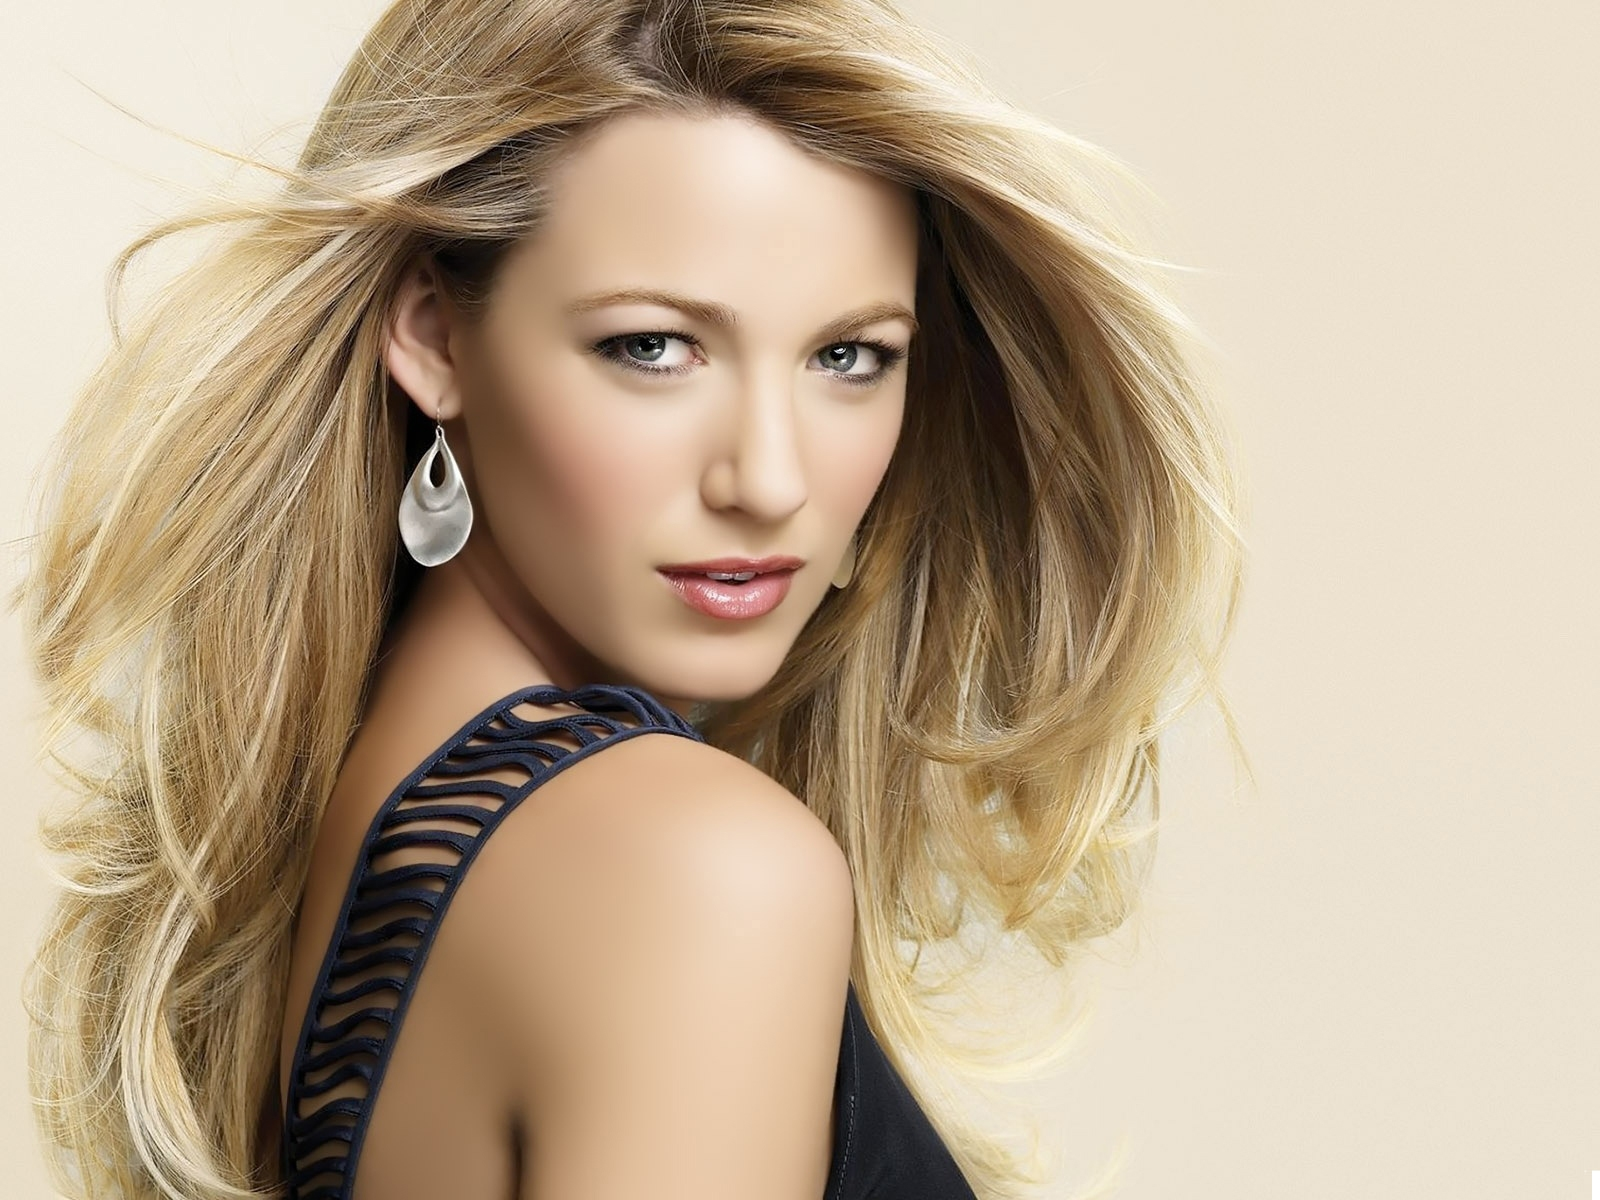 Blake Lively HD New wallpapers 2012 | All Hollywood Stars